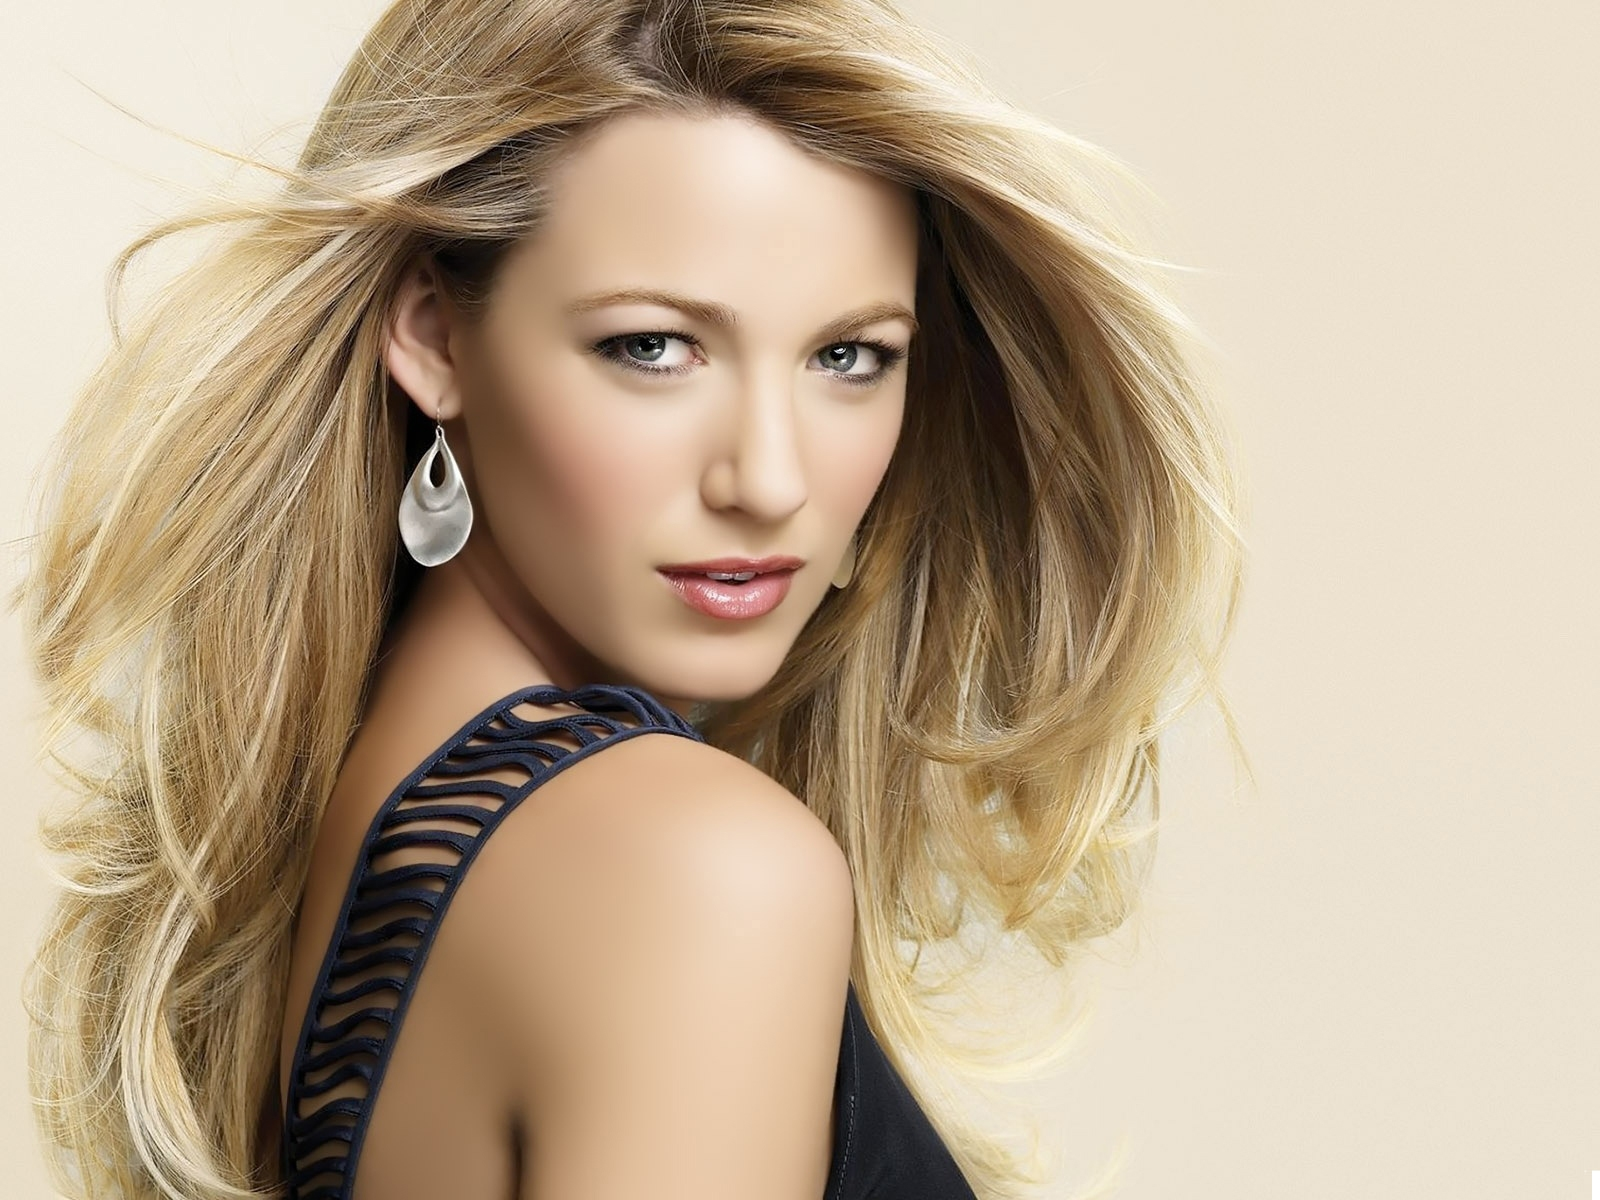 Blake Lively HD New wallpapers 2012 | All Hollywood Stars